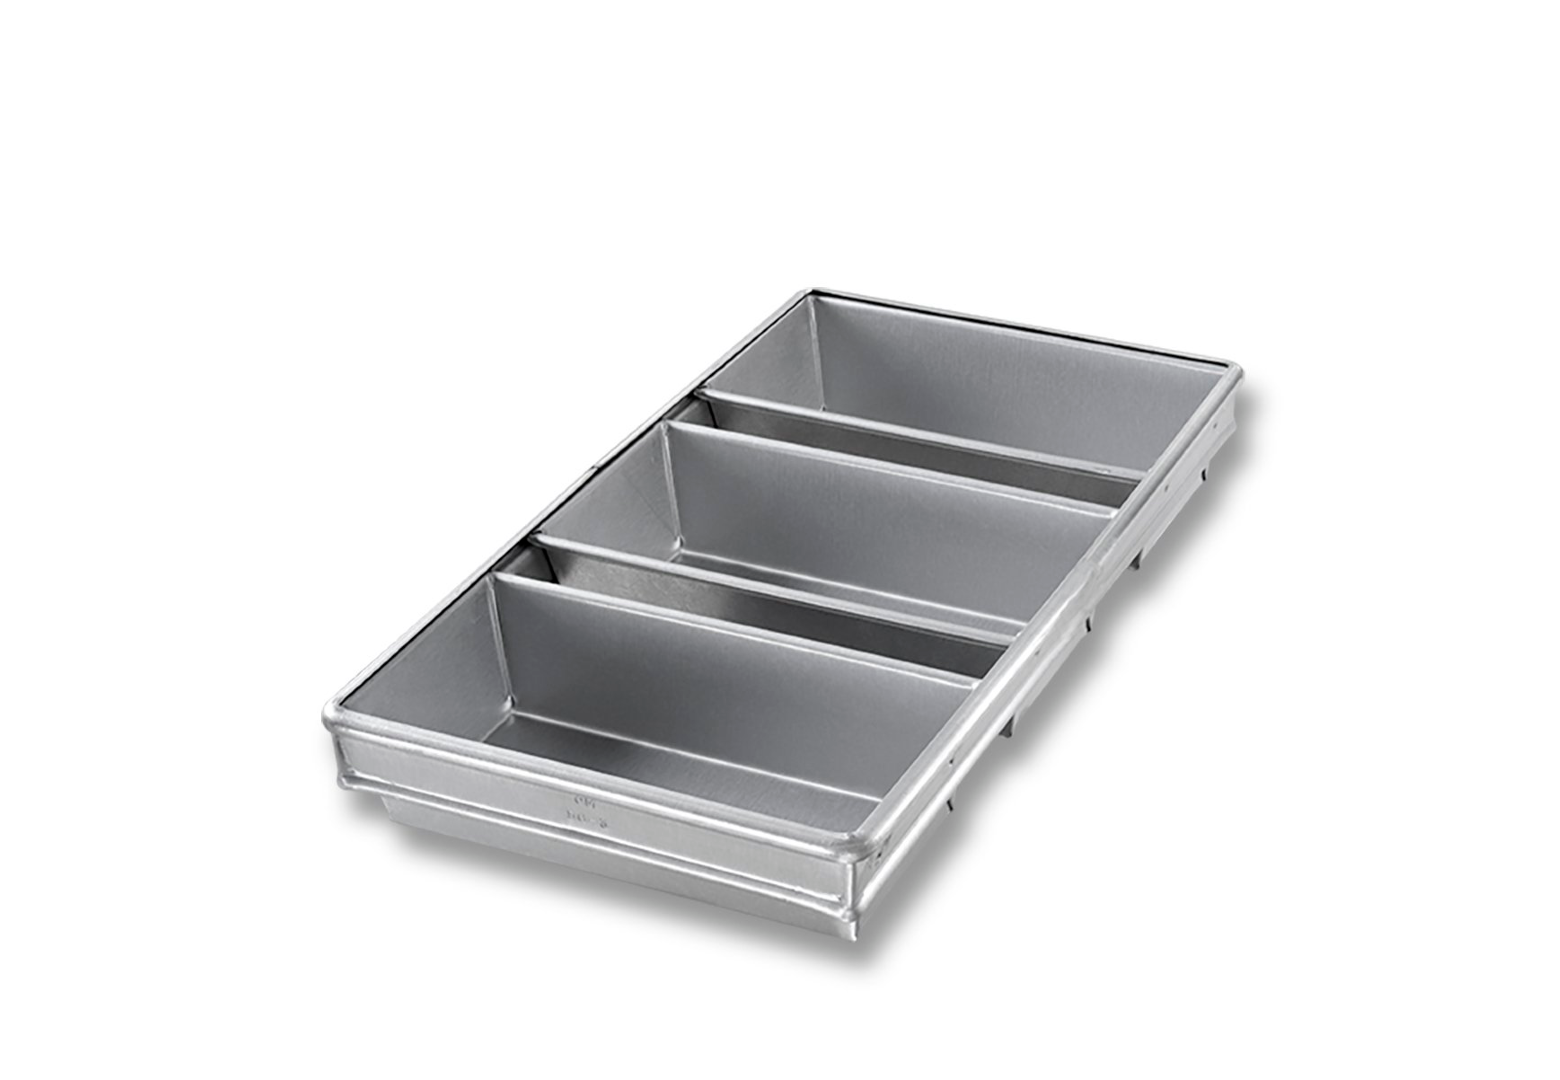 3-STRAP OPEN TOP BREAD PAN